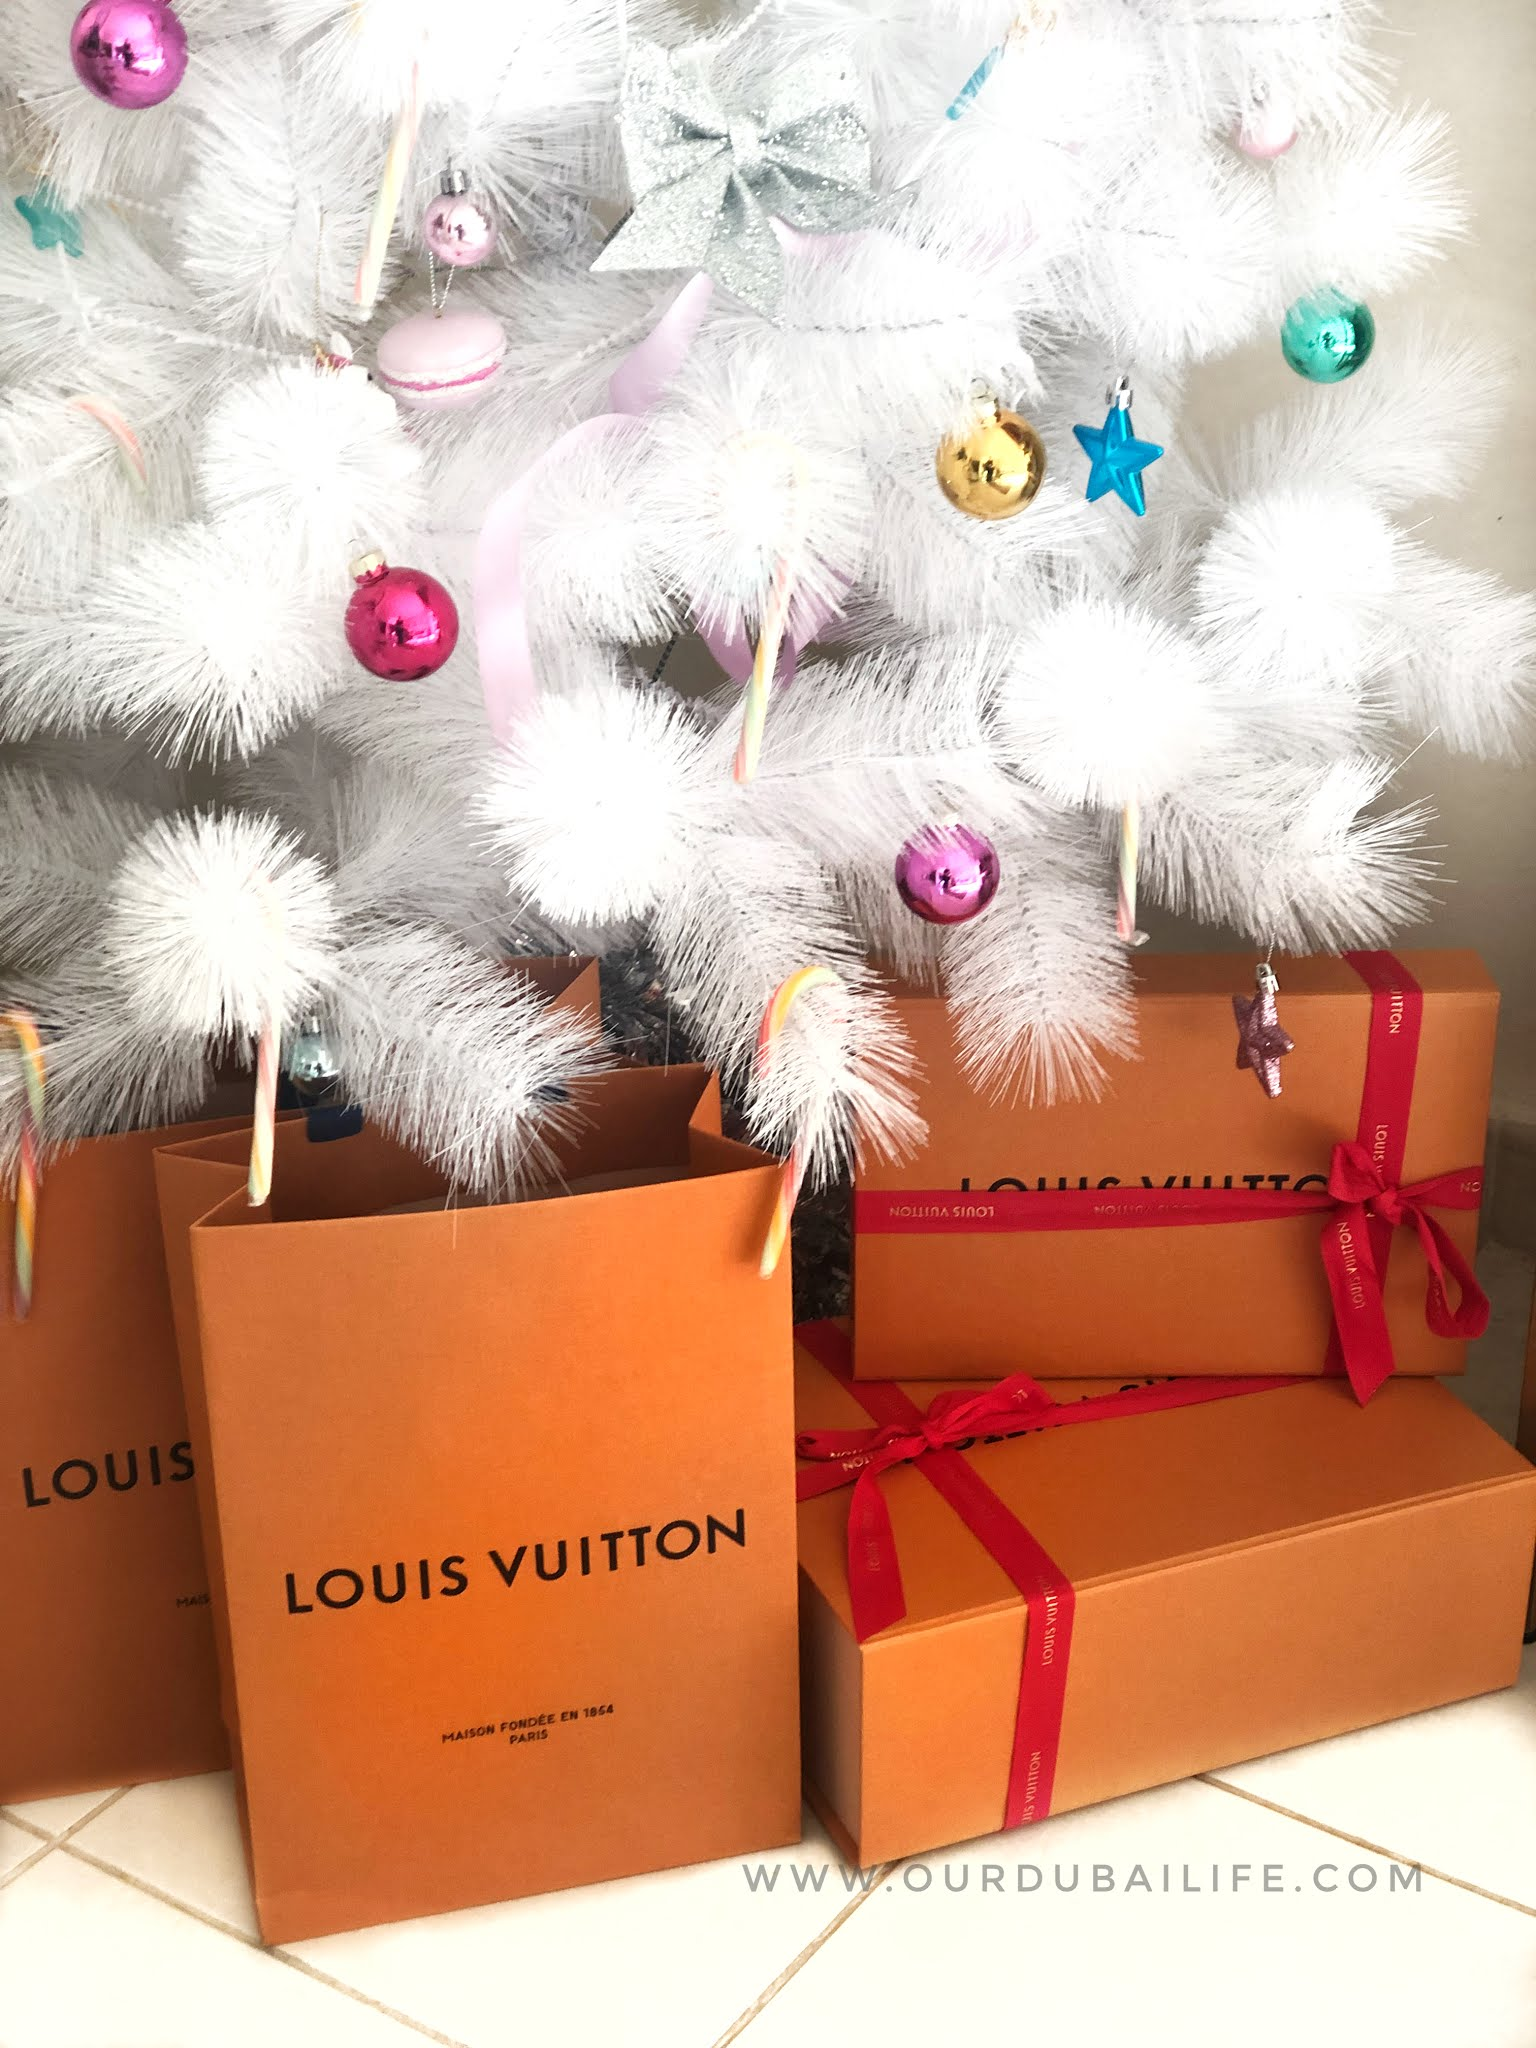 Louis Vuitton Xmas bags under the Christmas Tree